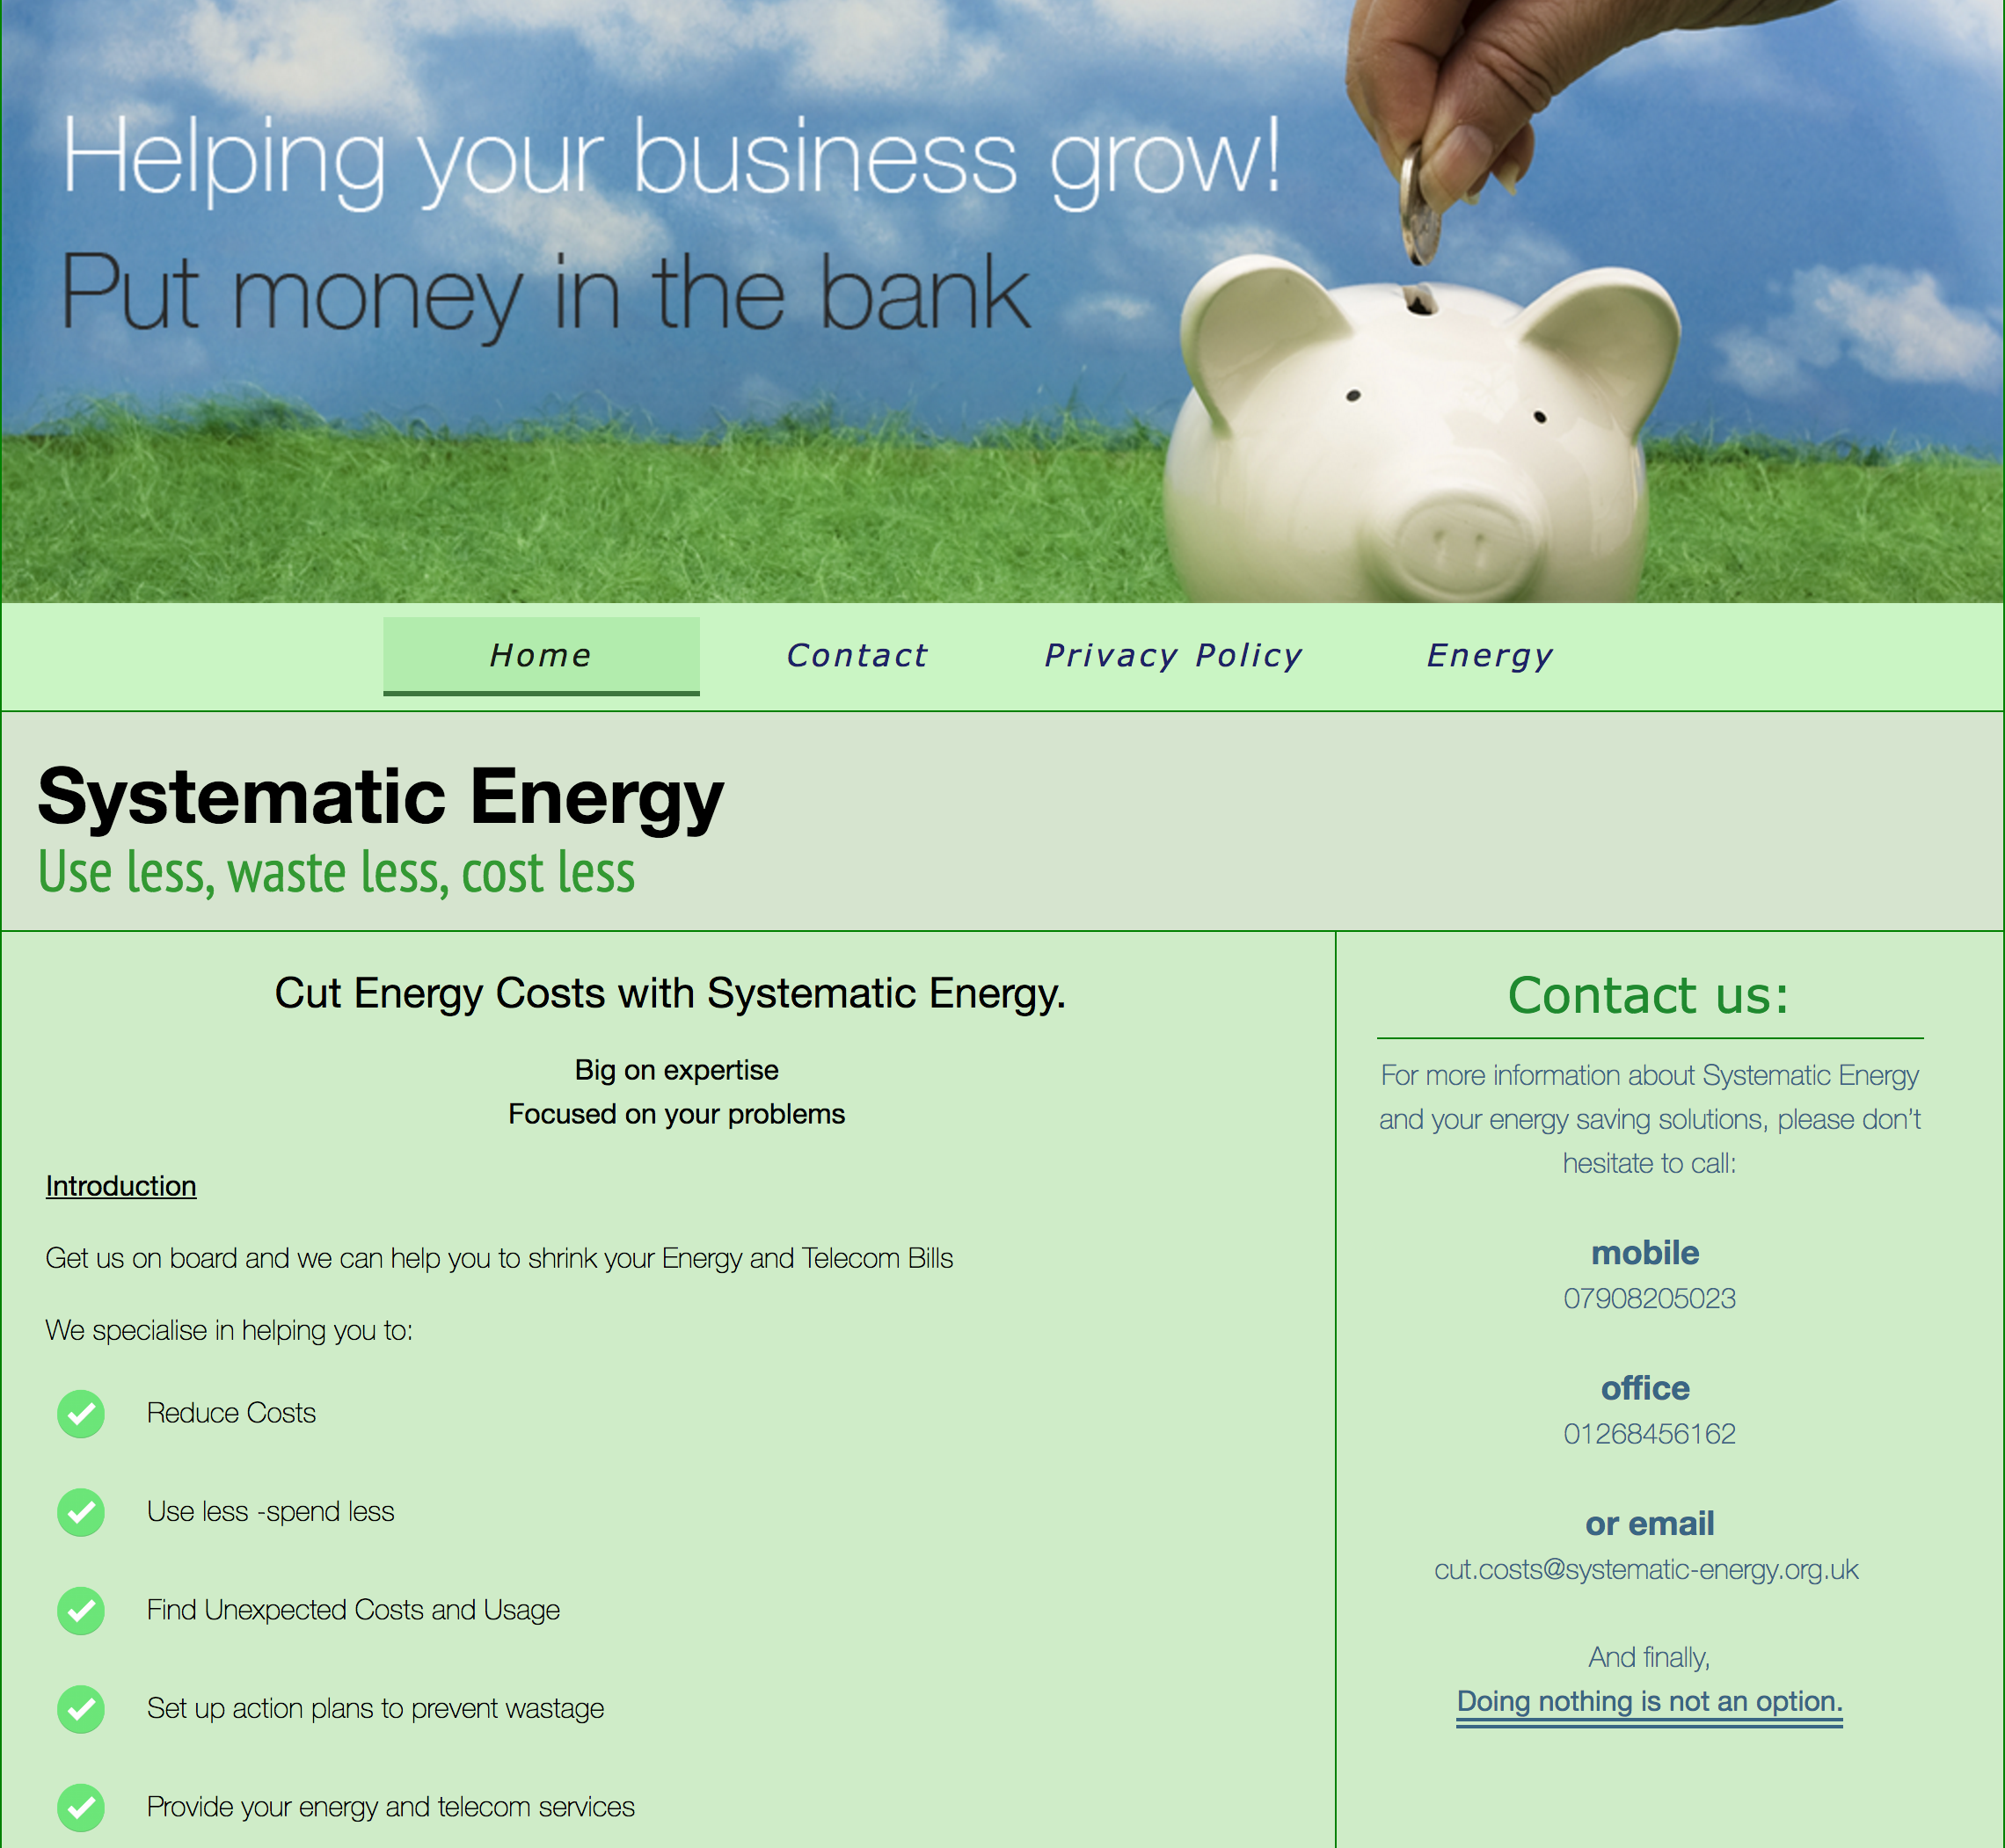 Systematic EnergyHome page image